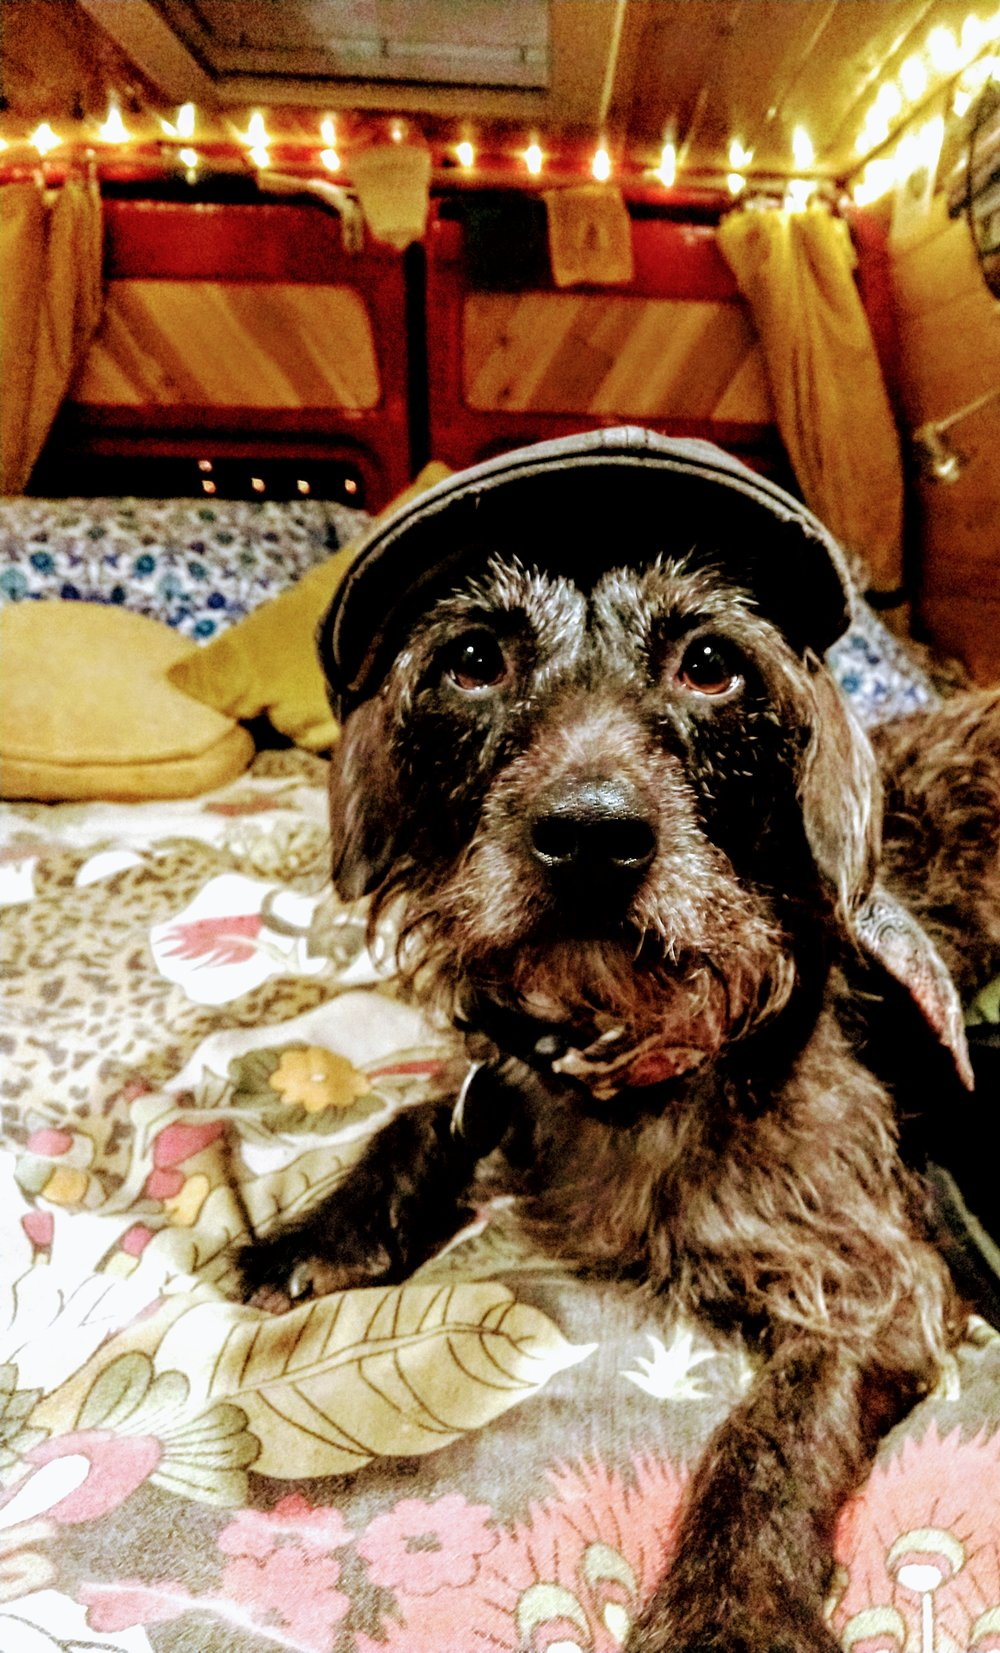 Pelé does not like this hat.